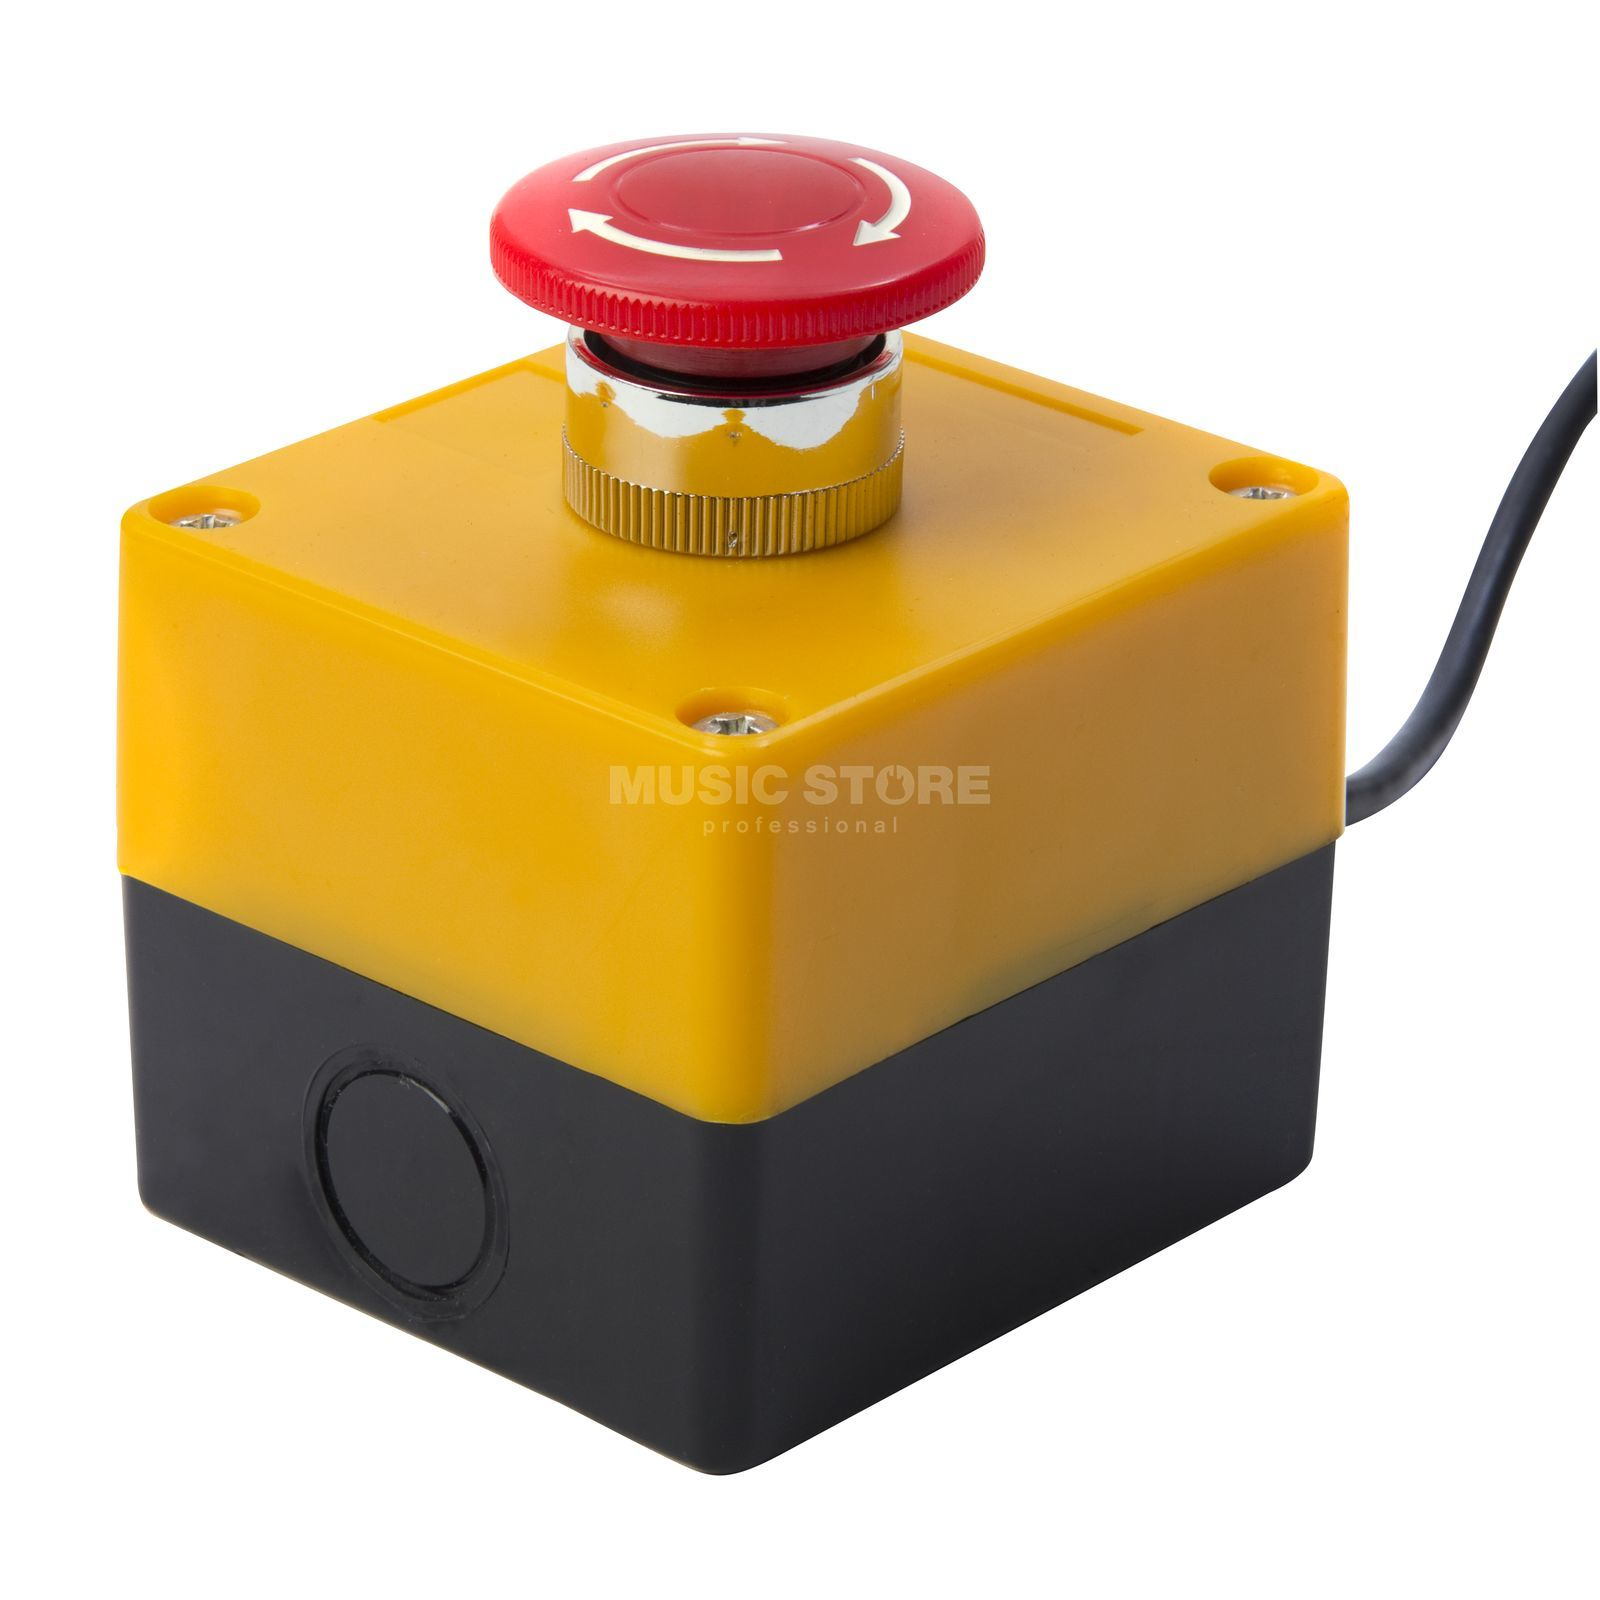 Eurolite emergency switch for lasers  Product Image